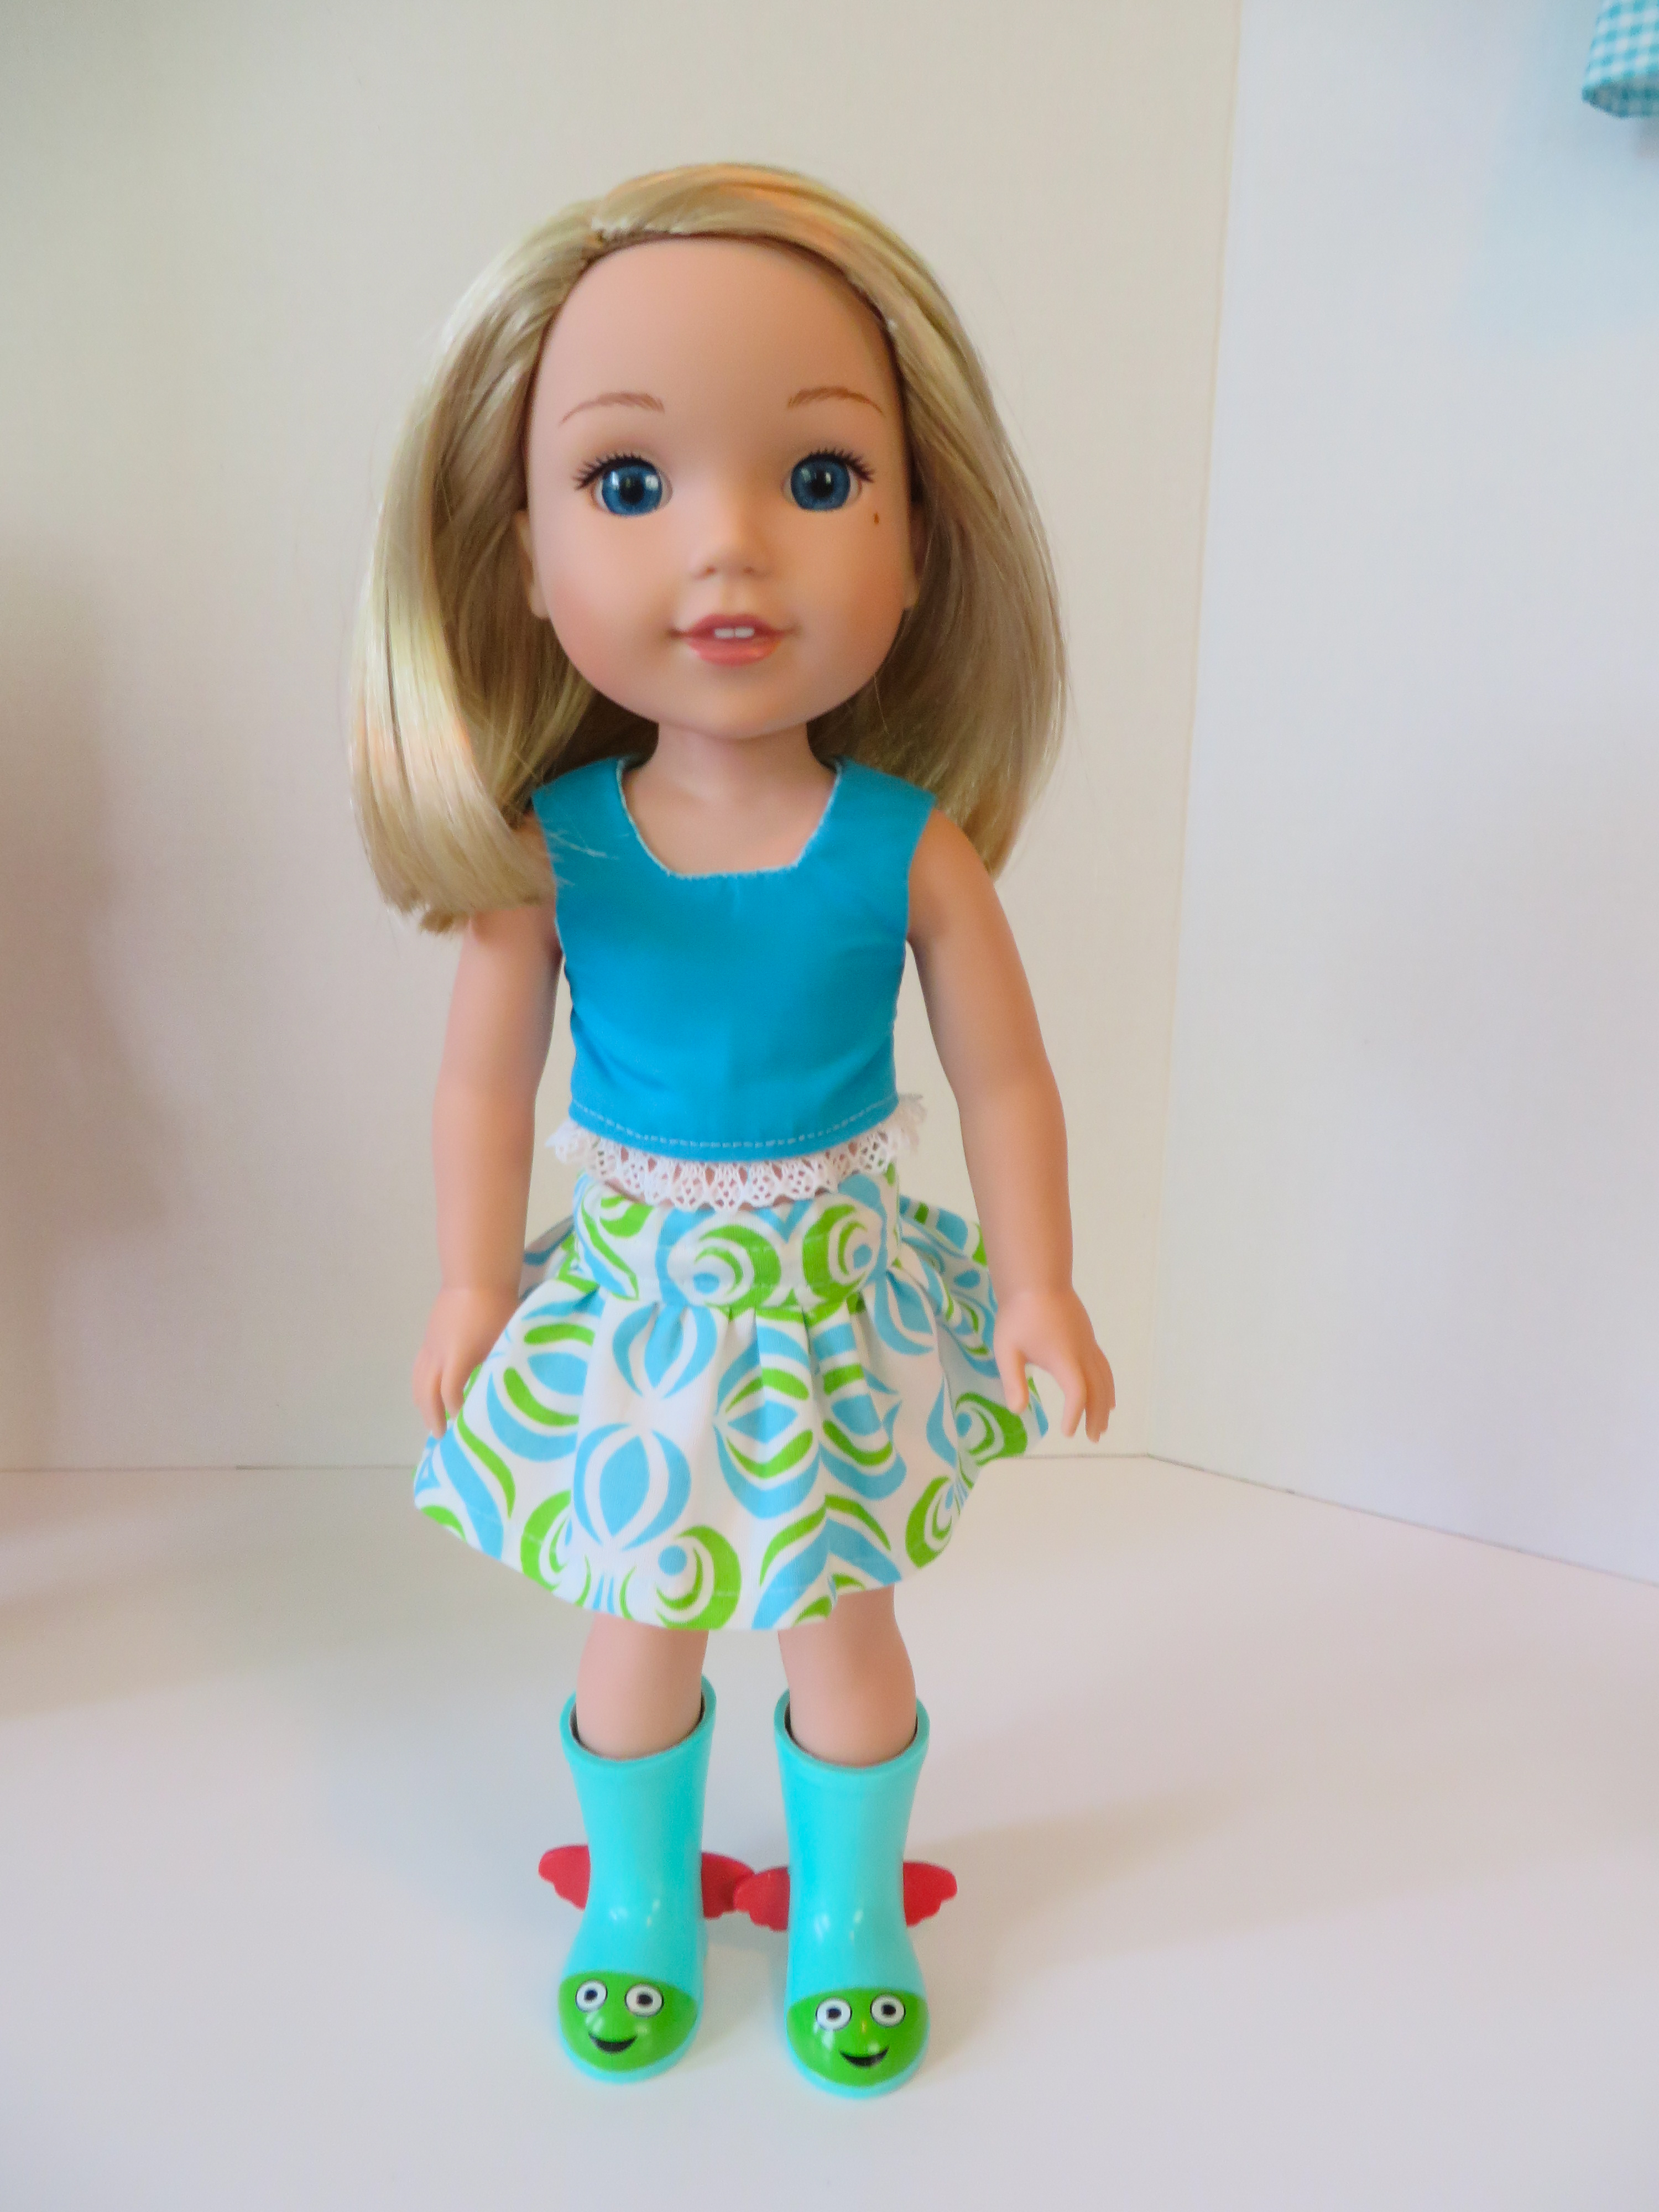 Find easy sewing patterns to make doll clothes for Wellie WIshers dolls at Oh Sew Kat! Free skirt pattern and lots of simple pdf patterns to choose from.